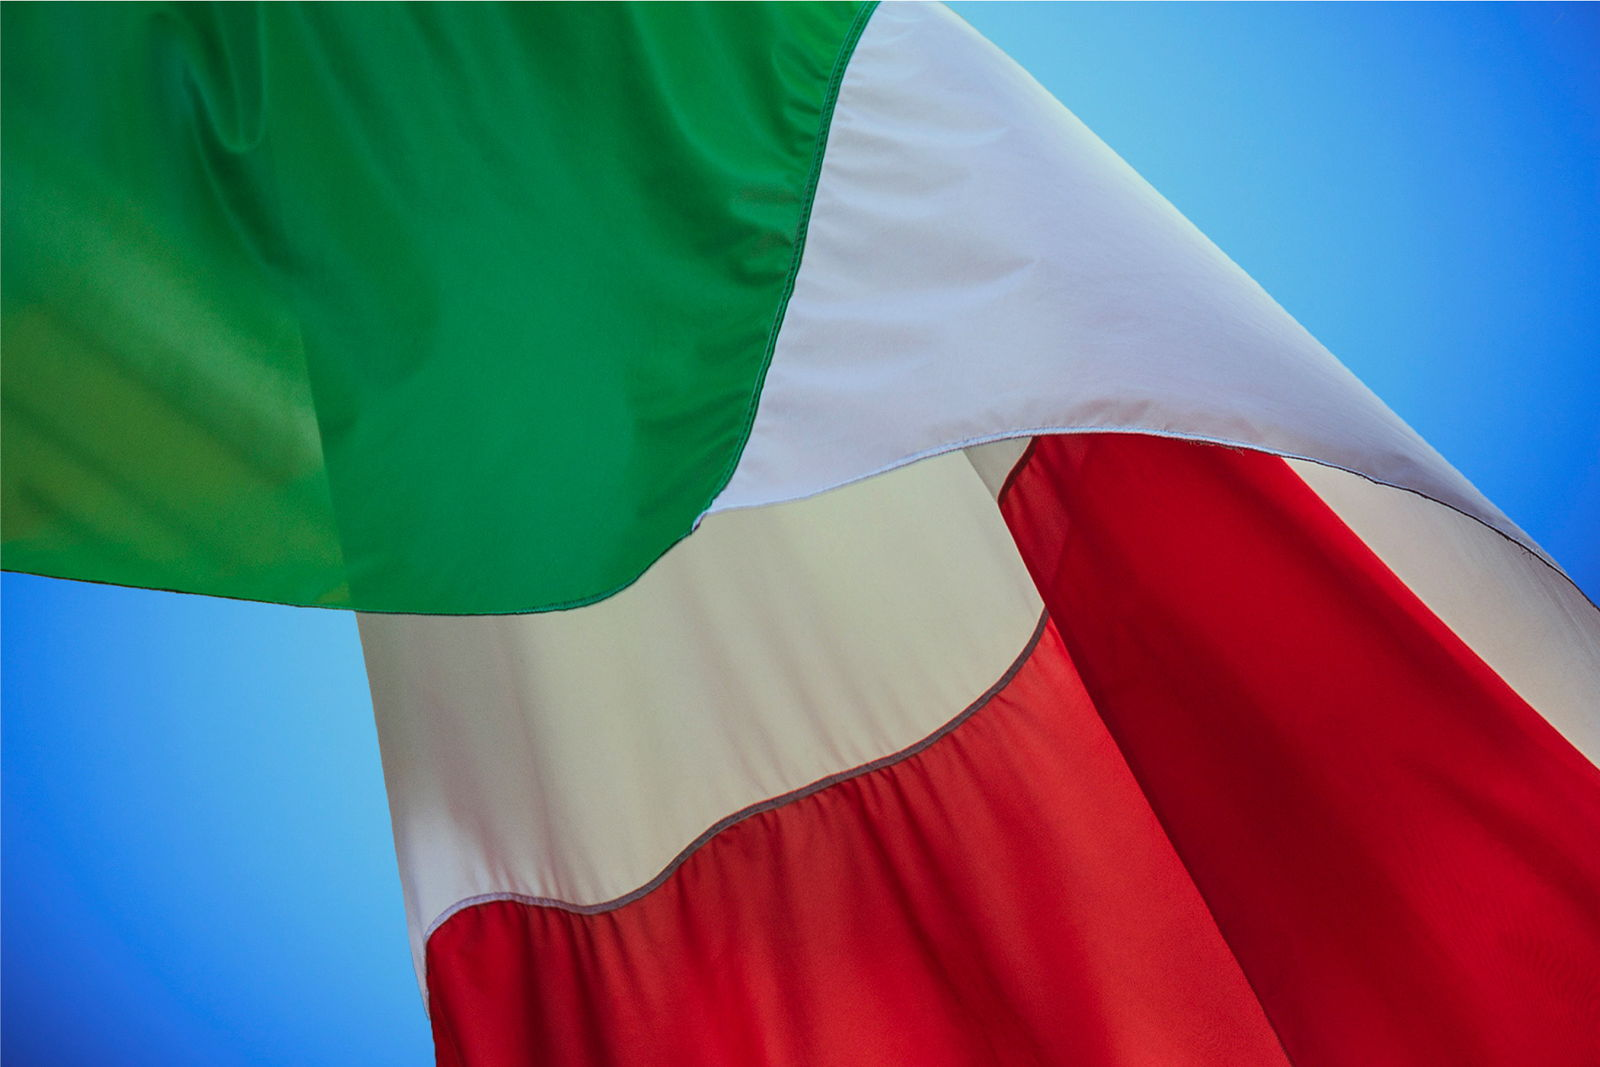 export gov it - bandiera italiana